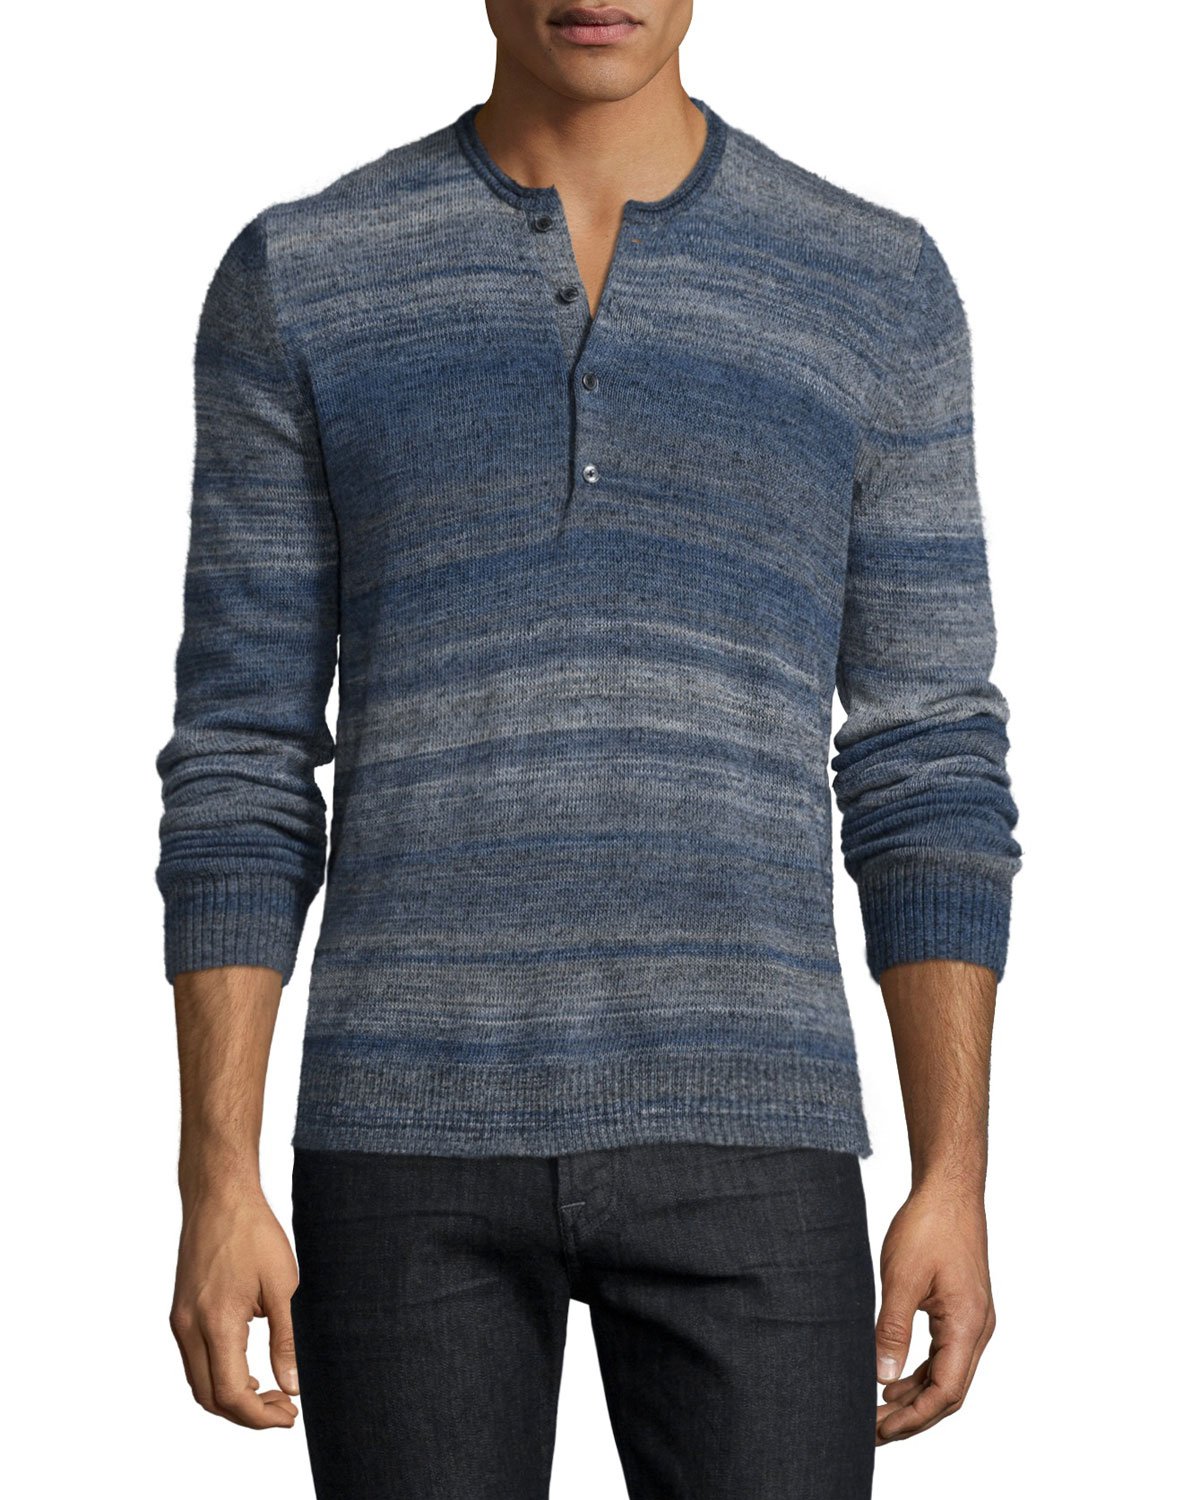 Space-Dye Long-Sleeve Henley Shirt, Navy